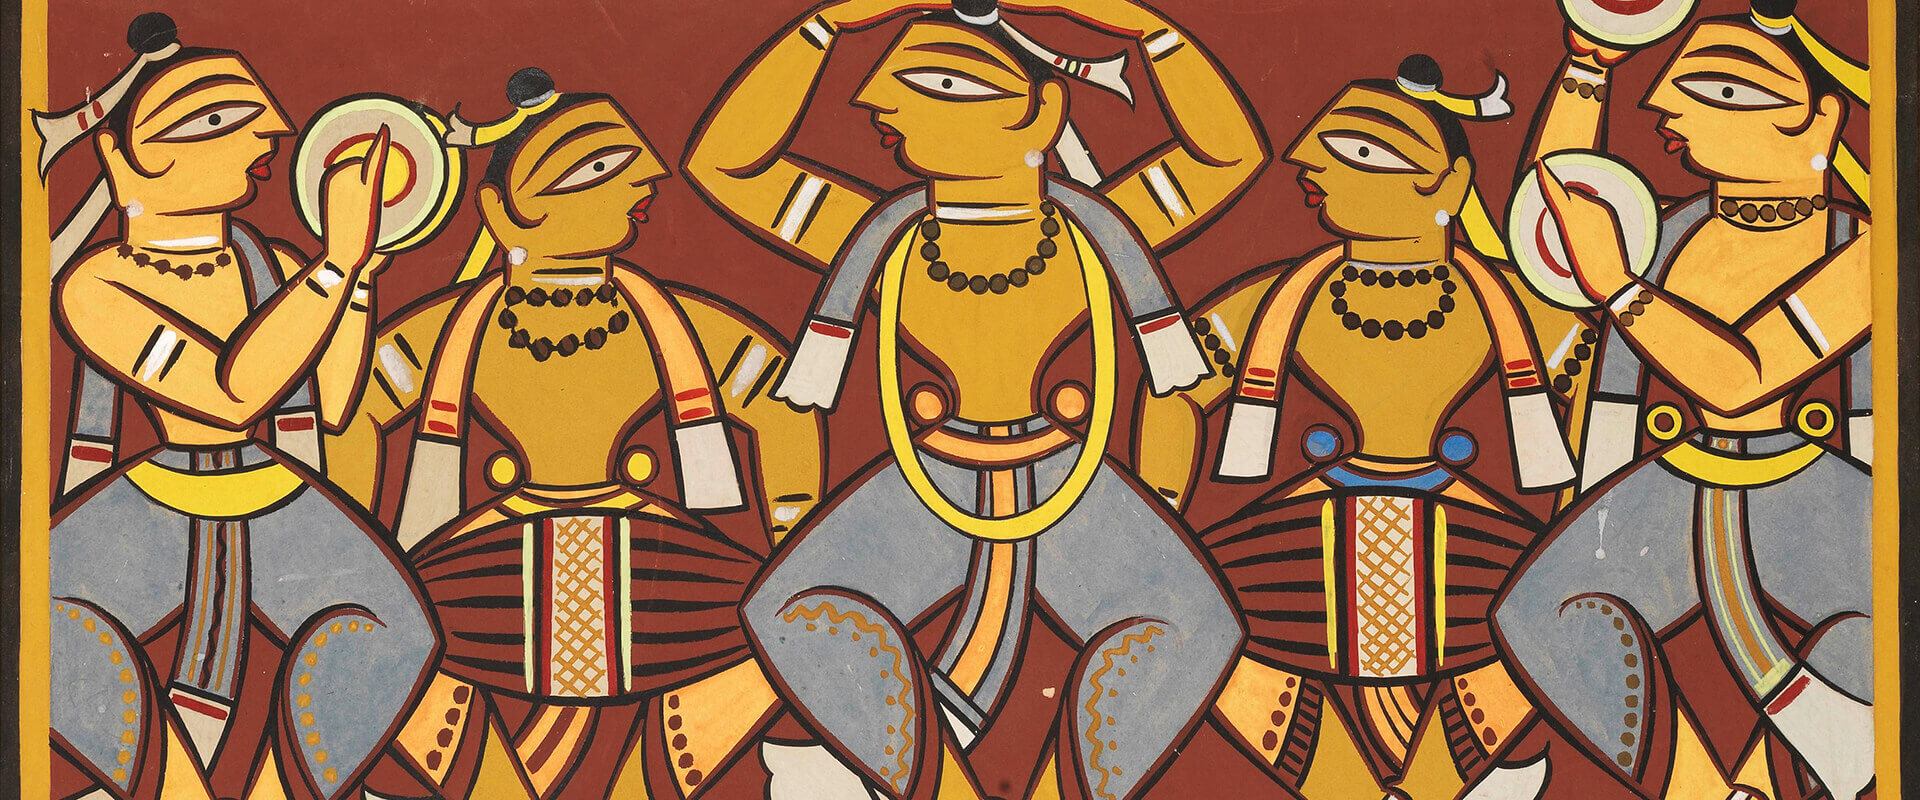 Jamini Roy Artworks Collection | Buy Posters, Frames, Canvas, Digital Art & Large Size Prints Of The Famous Old Master's Artworks